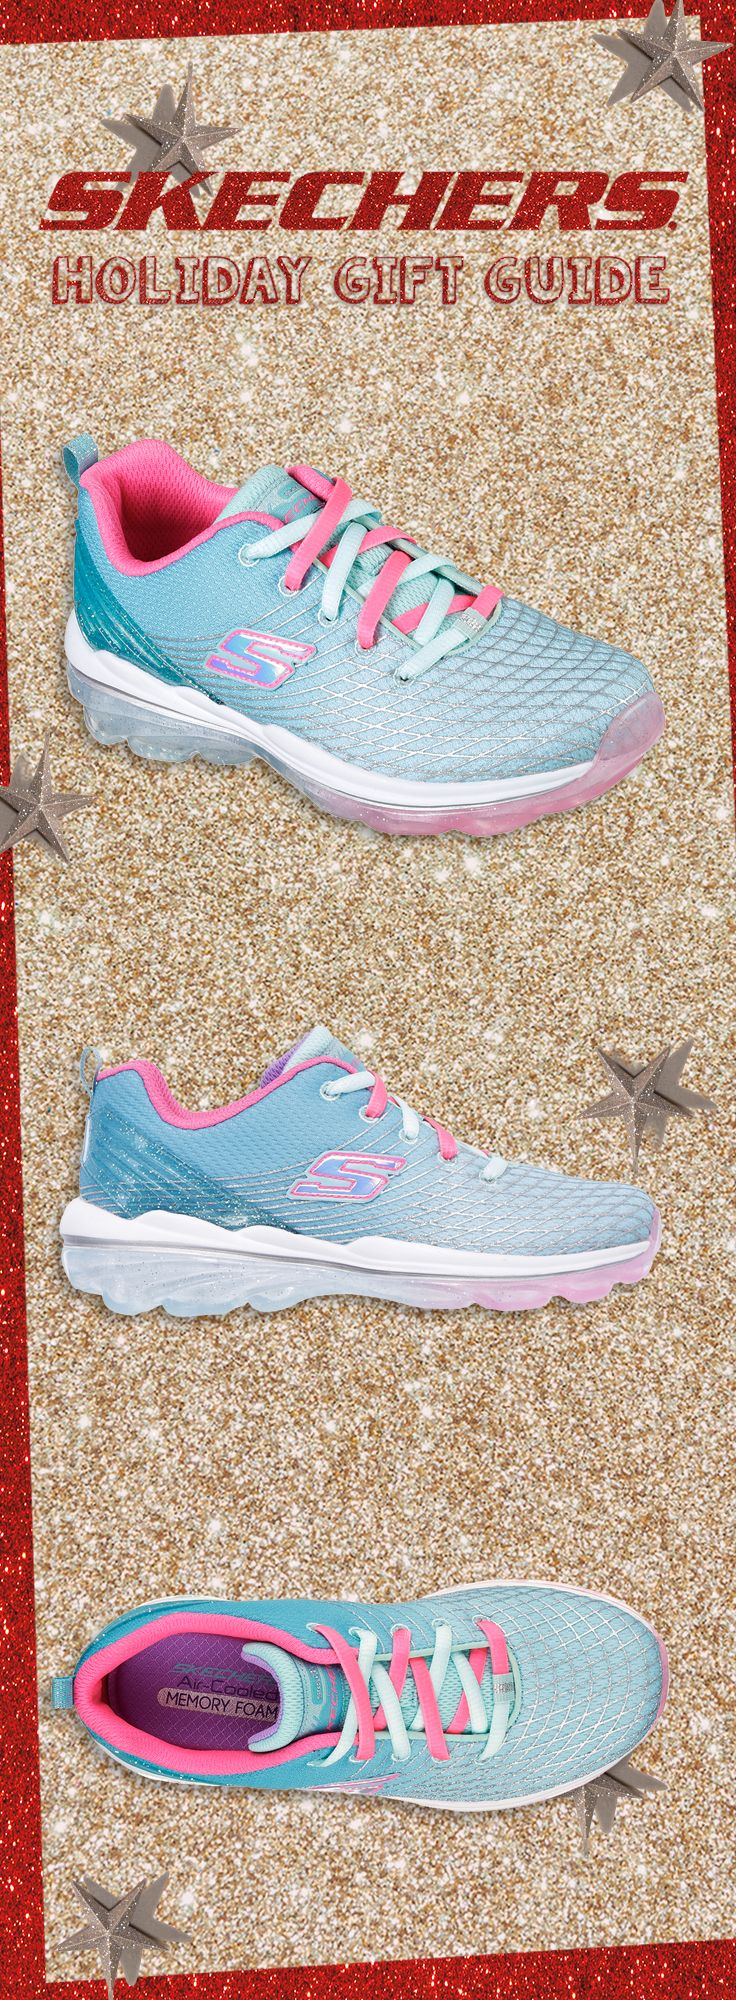 Redefine sport cool style with the Skech-Air Deluxe for littles. #SKECHERSholiday